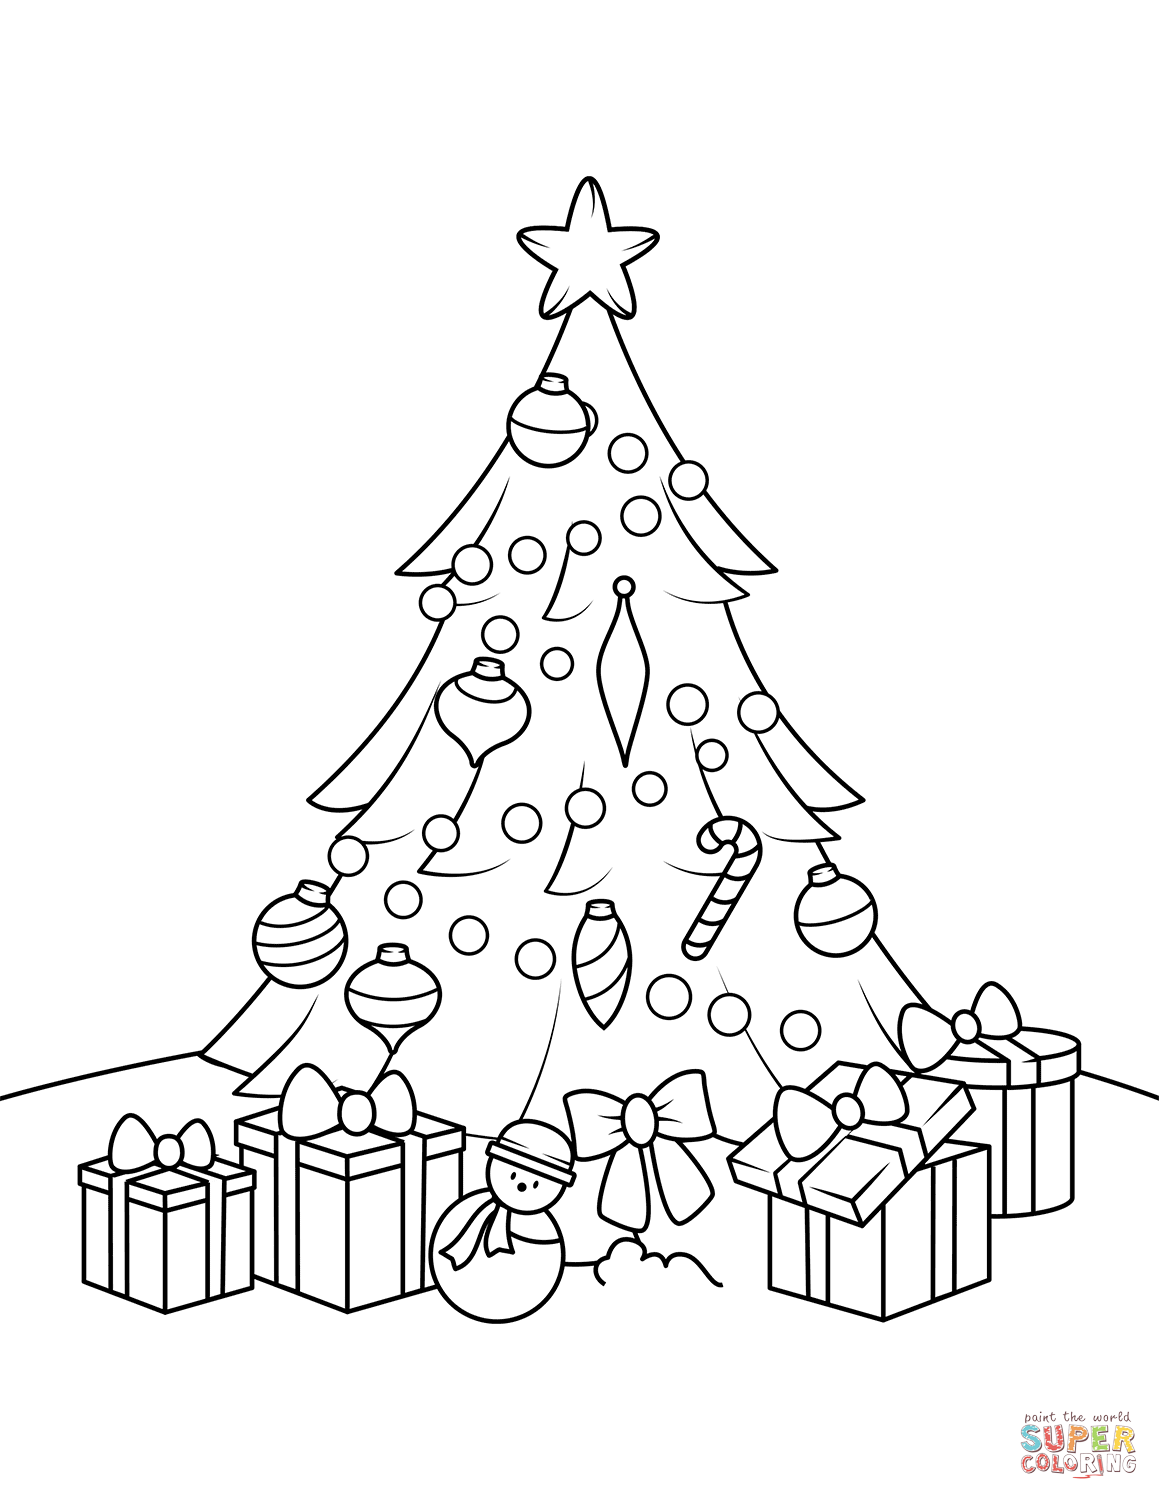 Christmas Tree With Presents Coloring Page